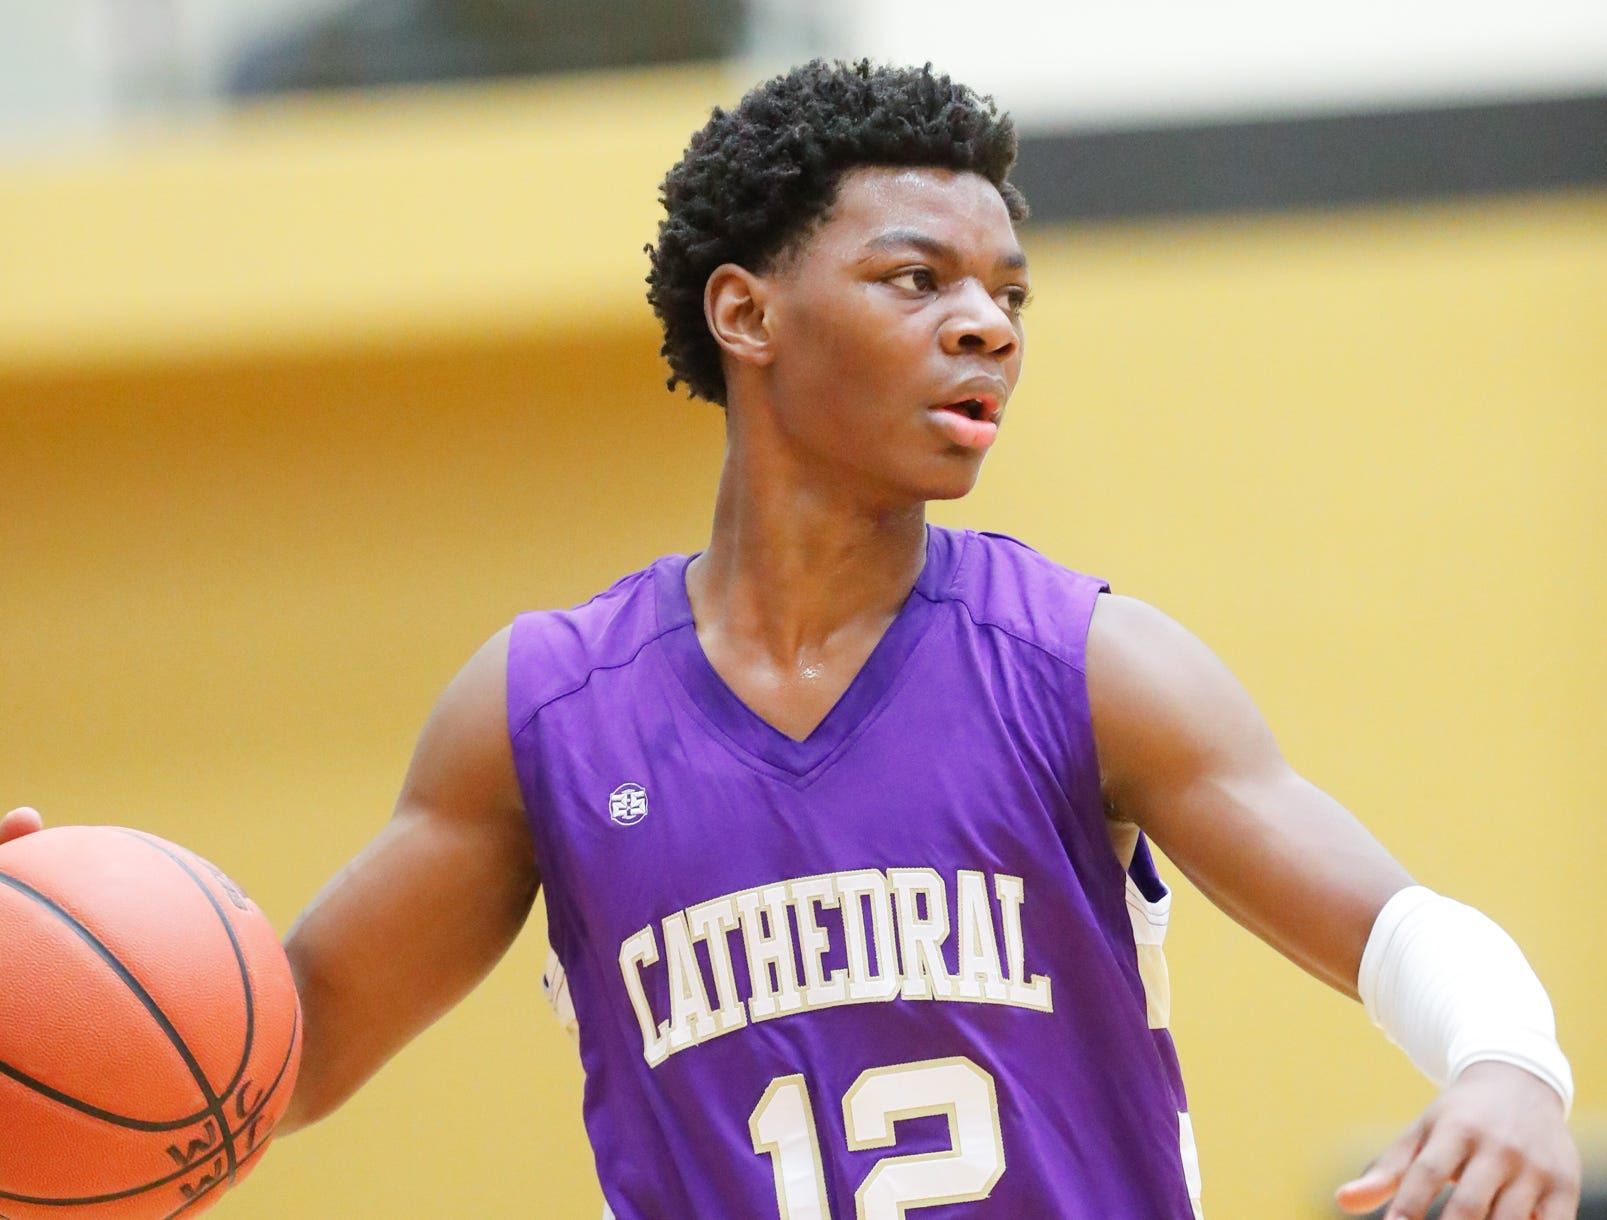 Cathedral High School's guard Tayshawn Comer (12) looks to pass the the ball during a varsity boys basketball game between Cathedral High School and Warren Central High School at Warren Central on Friday, Dec. 7, 2018.